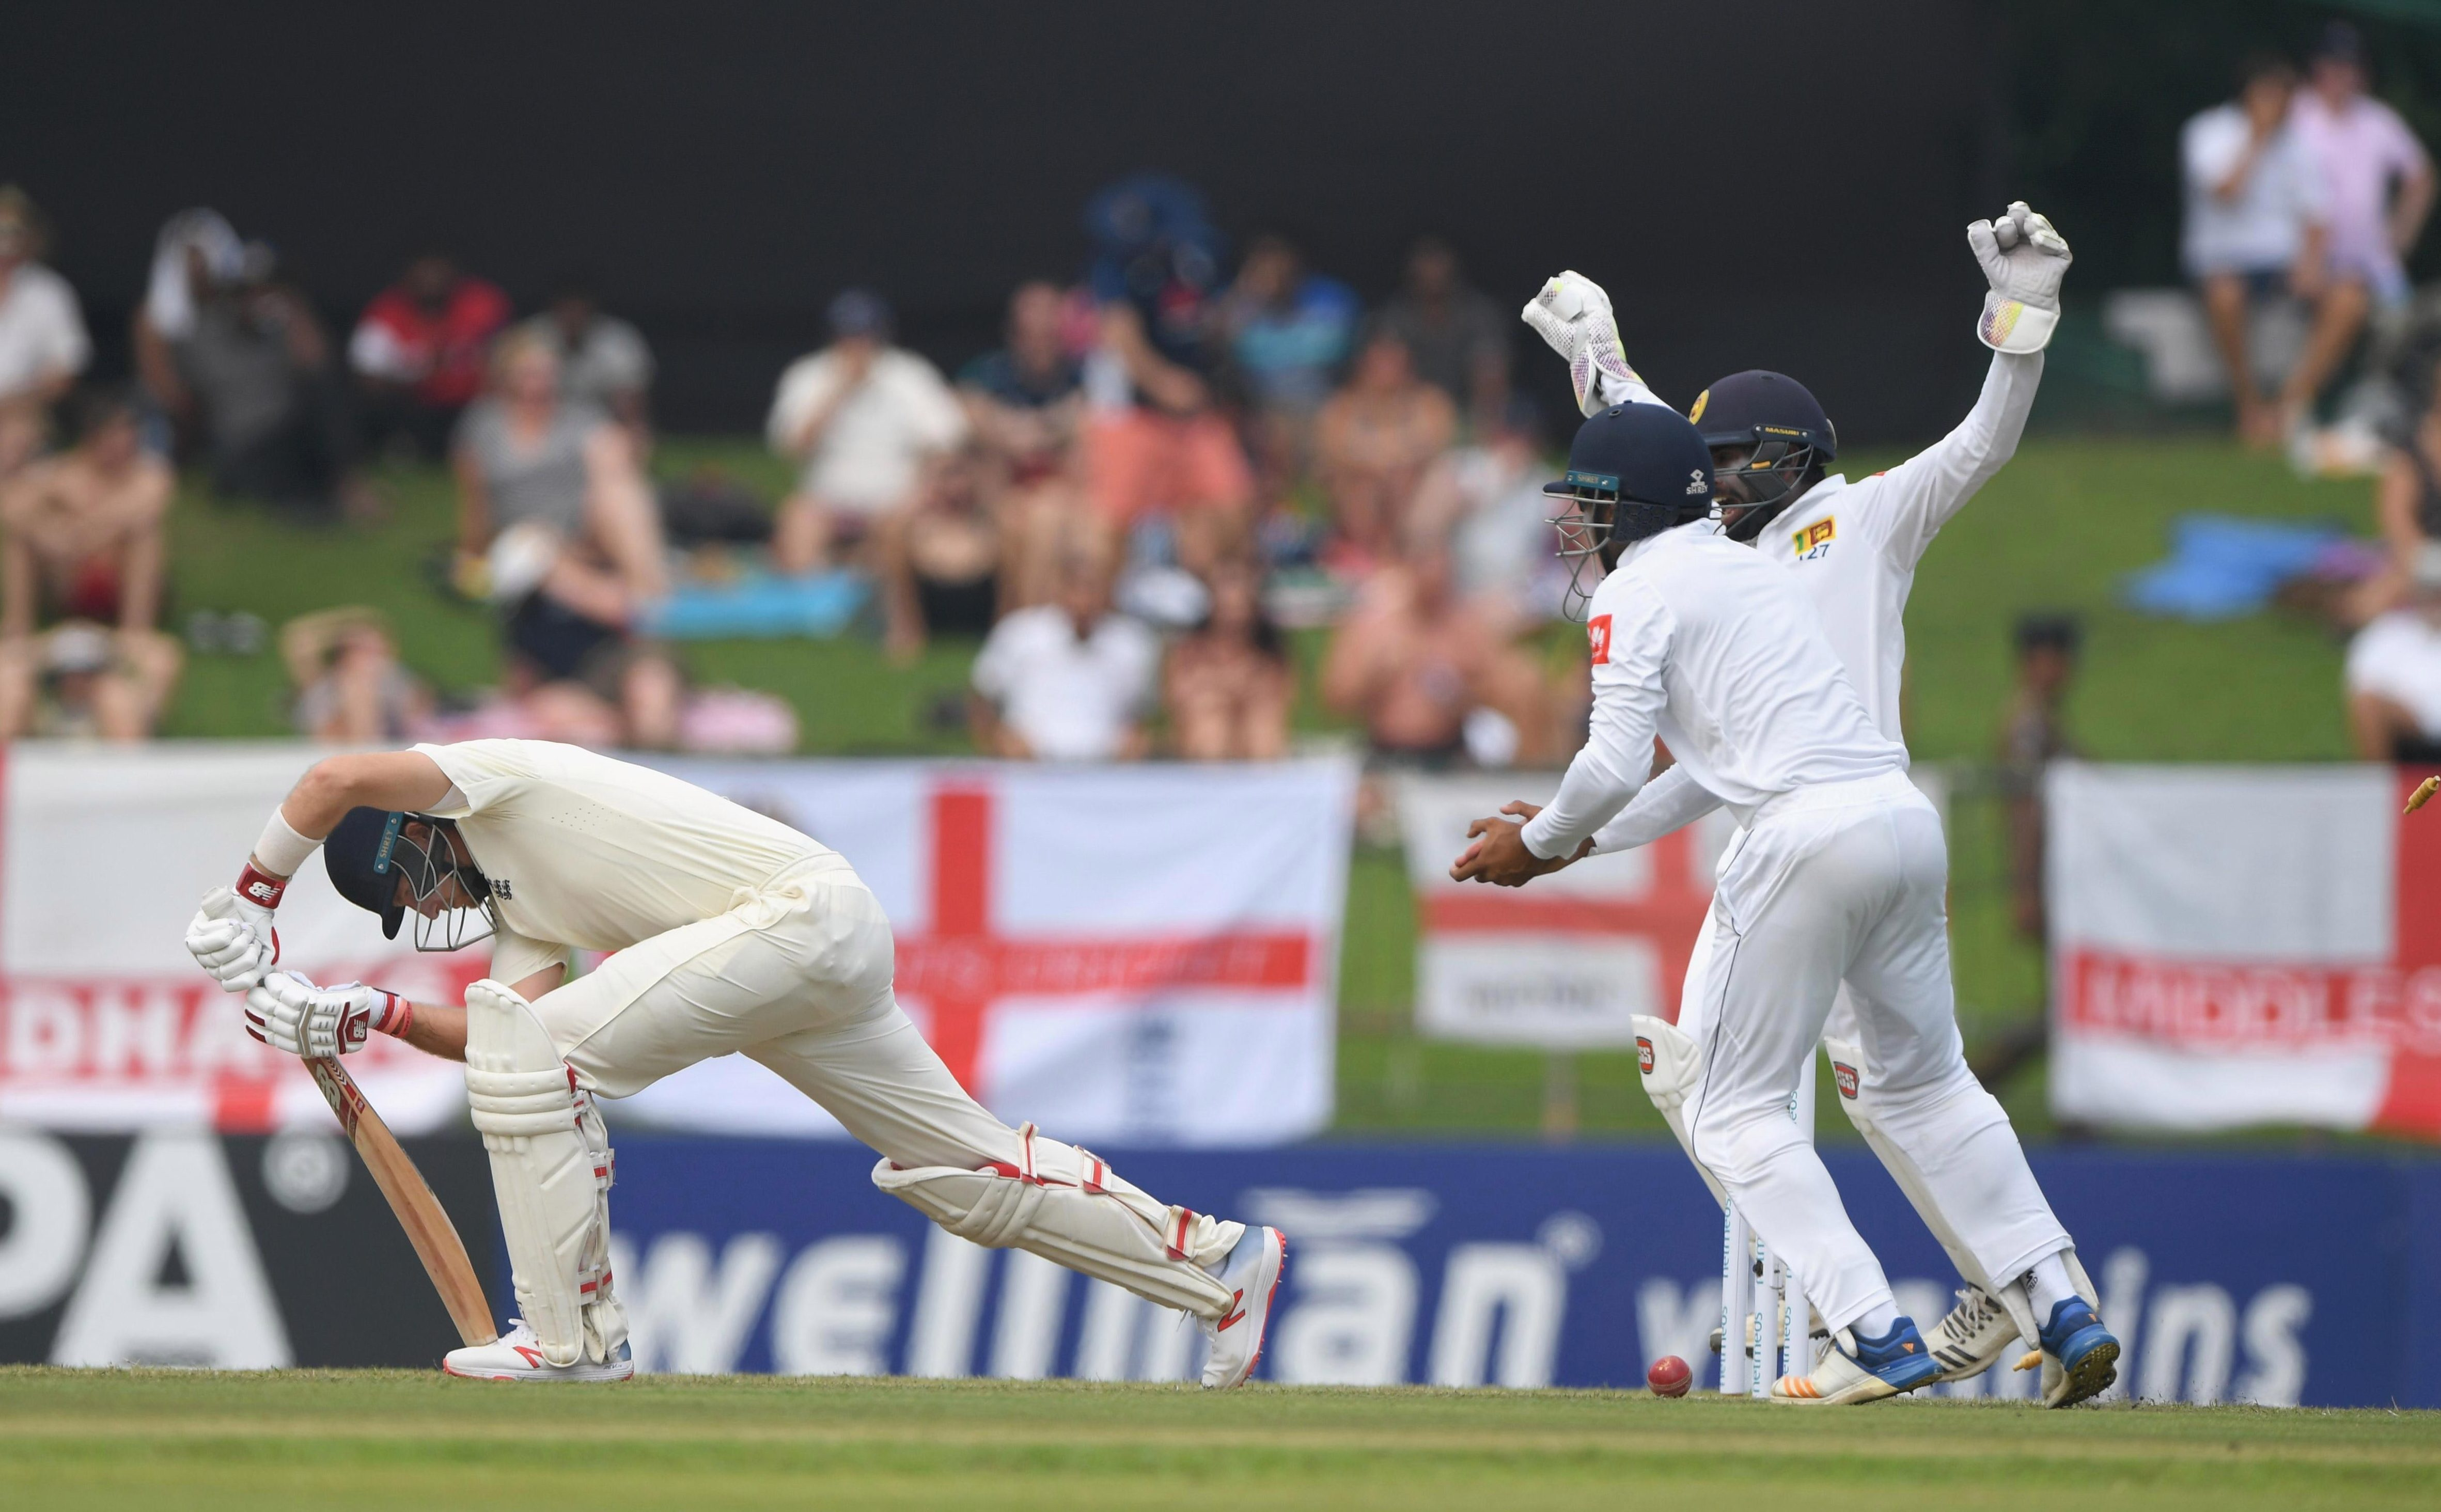 Joe Root Root was bowled through the gate on 14 as England's top order struggled